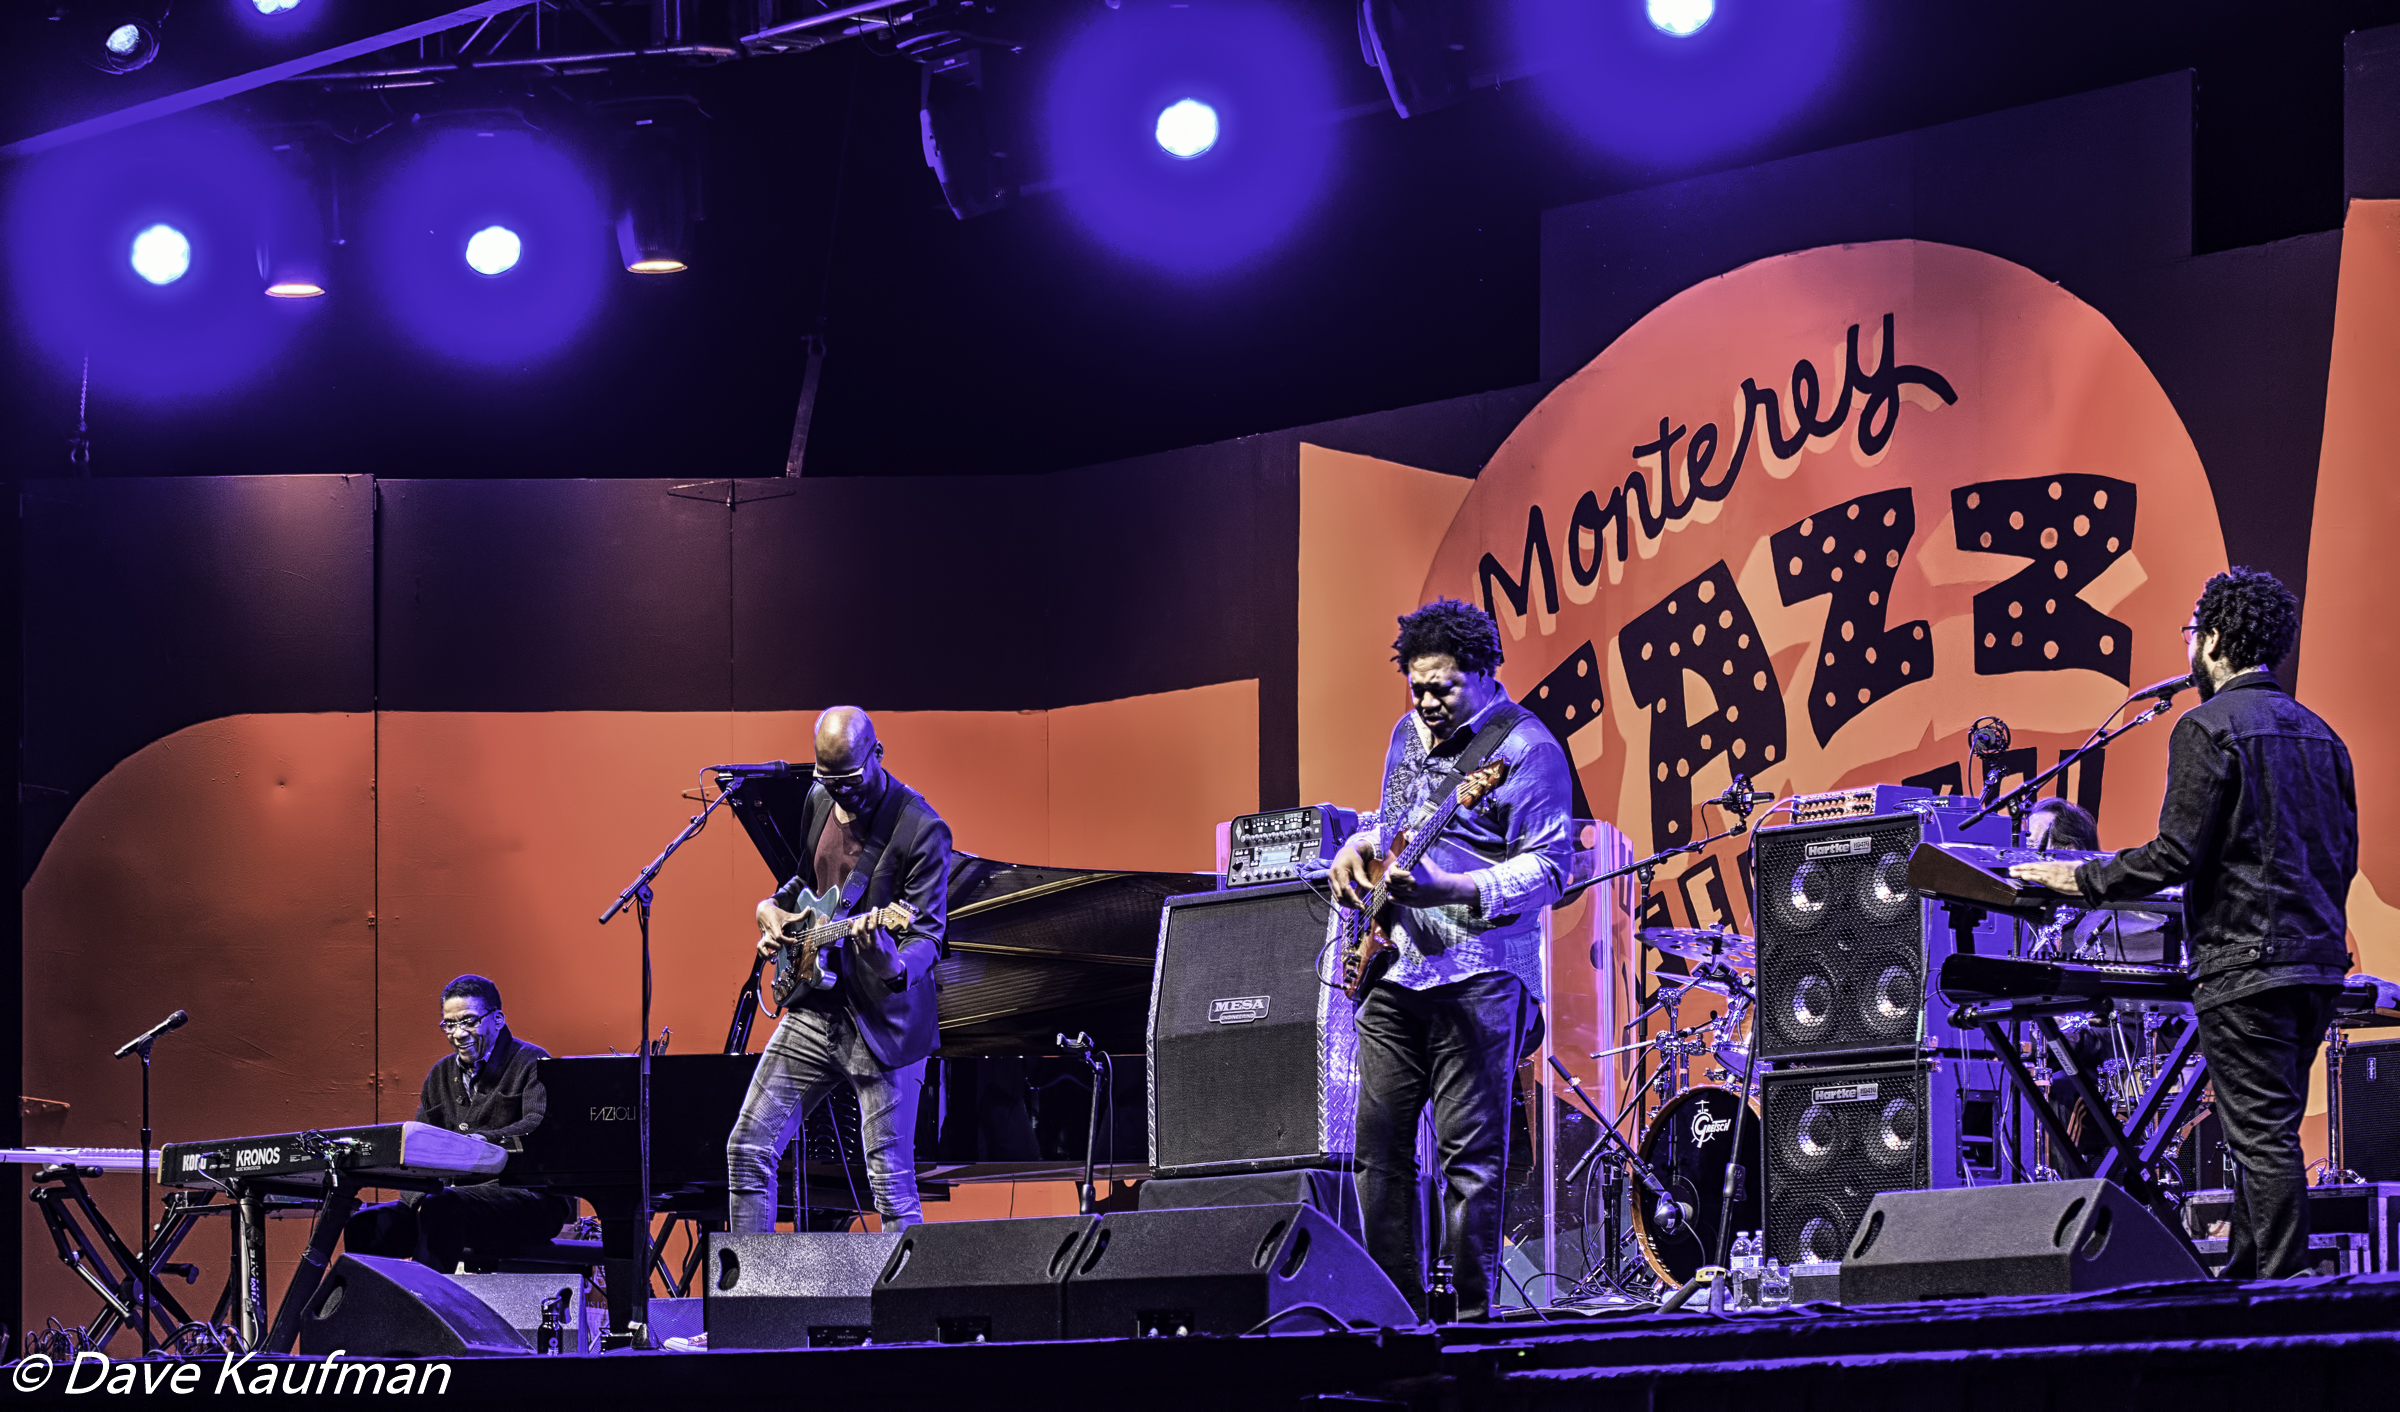 Herbie Hancock, Lionel Loueke, James Genus and Terrace Martin at the Monterey Jazz Festival